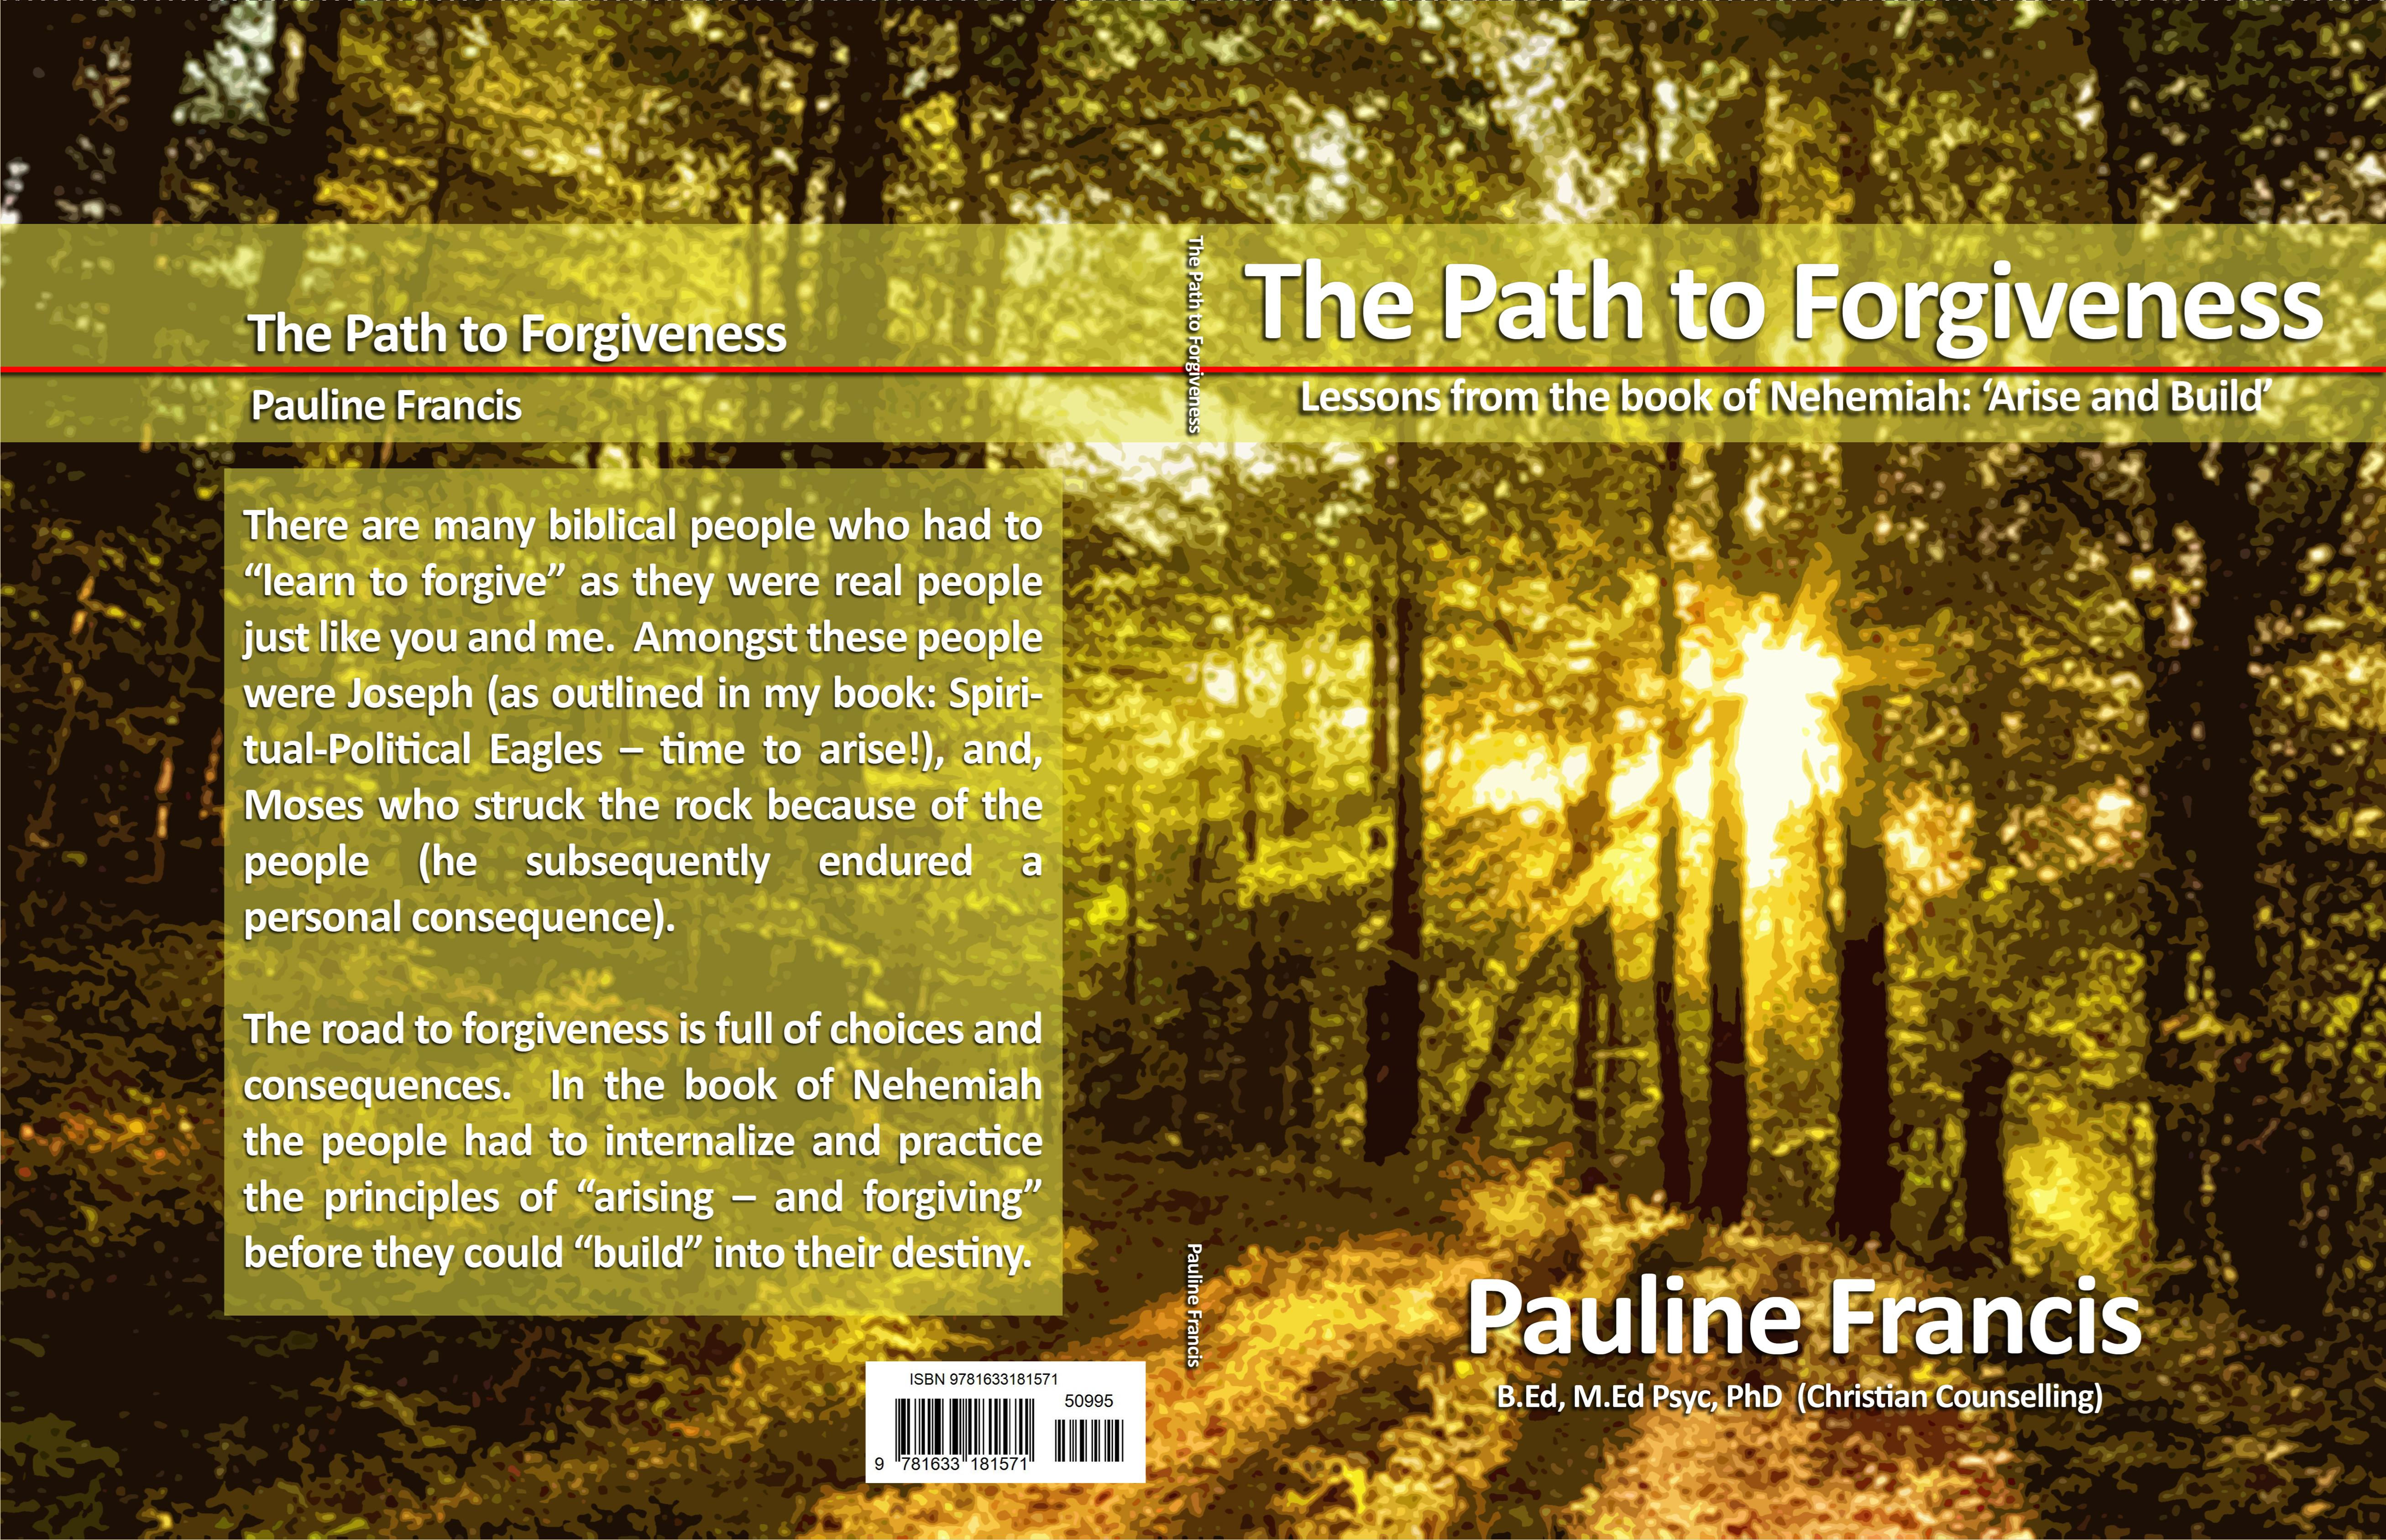 The Path to Forgiveness – Lessons from the book of Nehemiah: 'Arise and Build' cover image